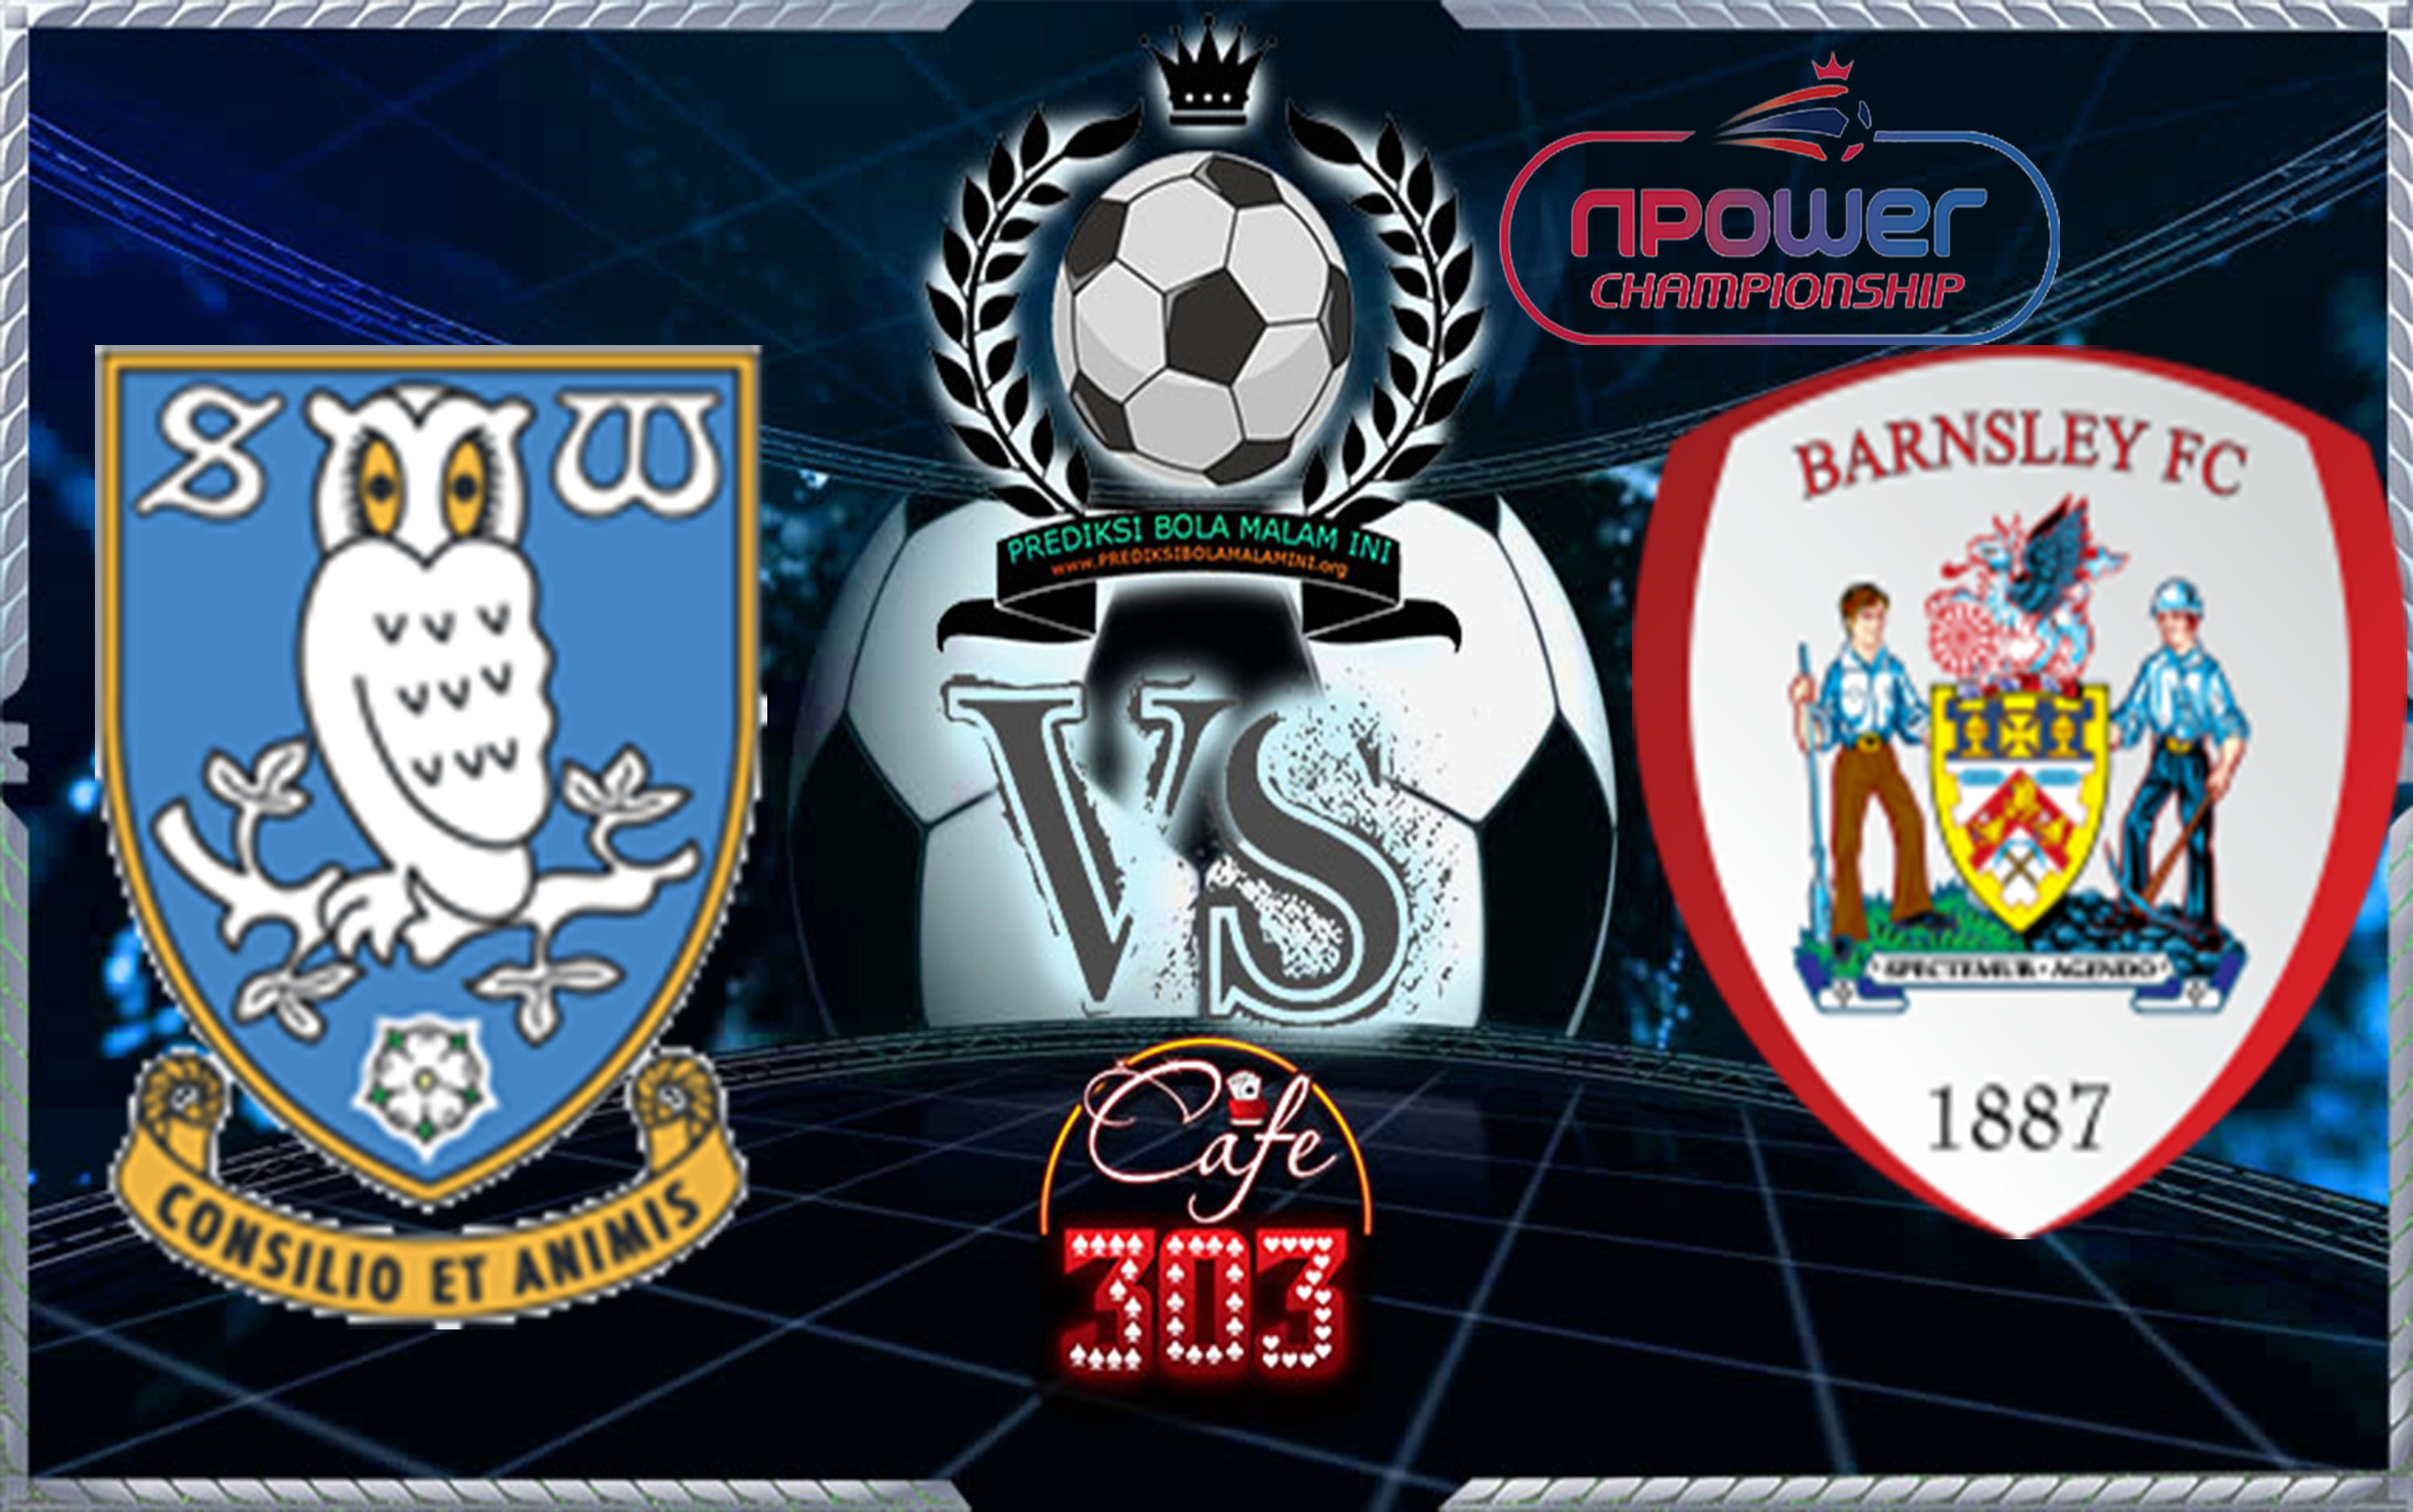 Prediksi Skor SHEFFIELD WEDNESDAY VS BARNSLEY pada tanggal 28 Oktober 2017 &quot;width =&quot; 640 &quot;height =&quot; 401 &quot;/&gt; </p> <p> <strong> <span style=